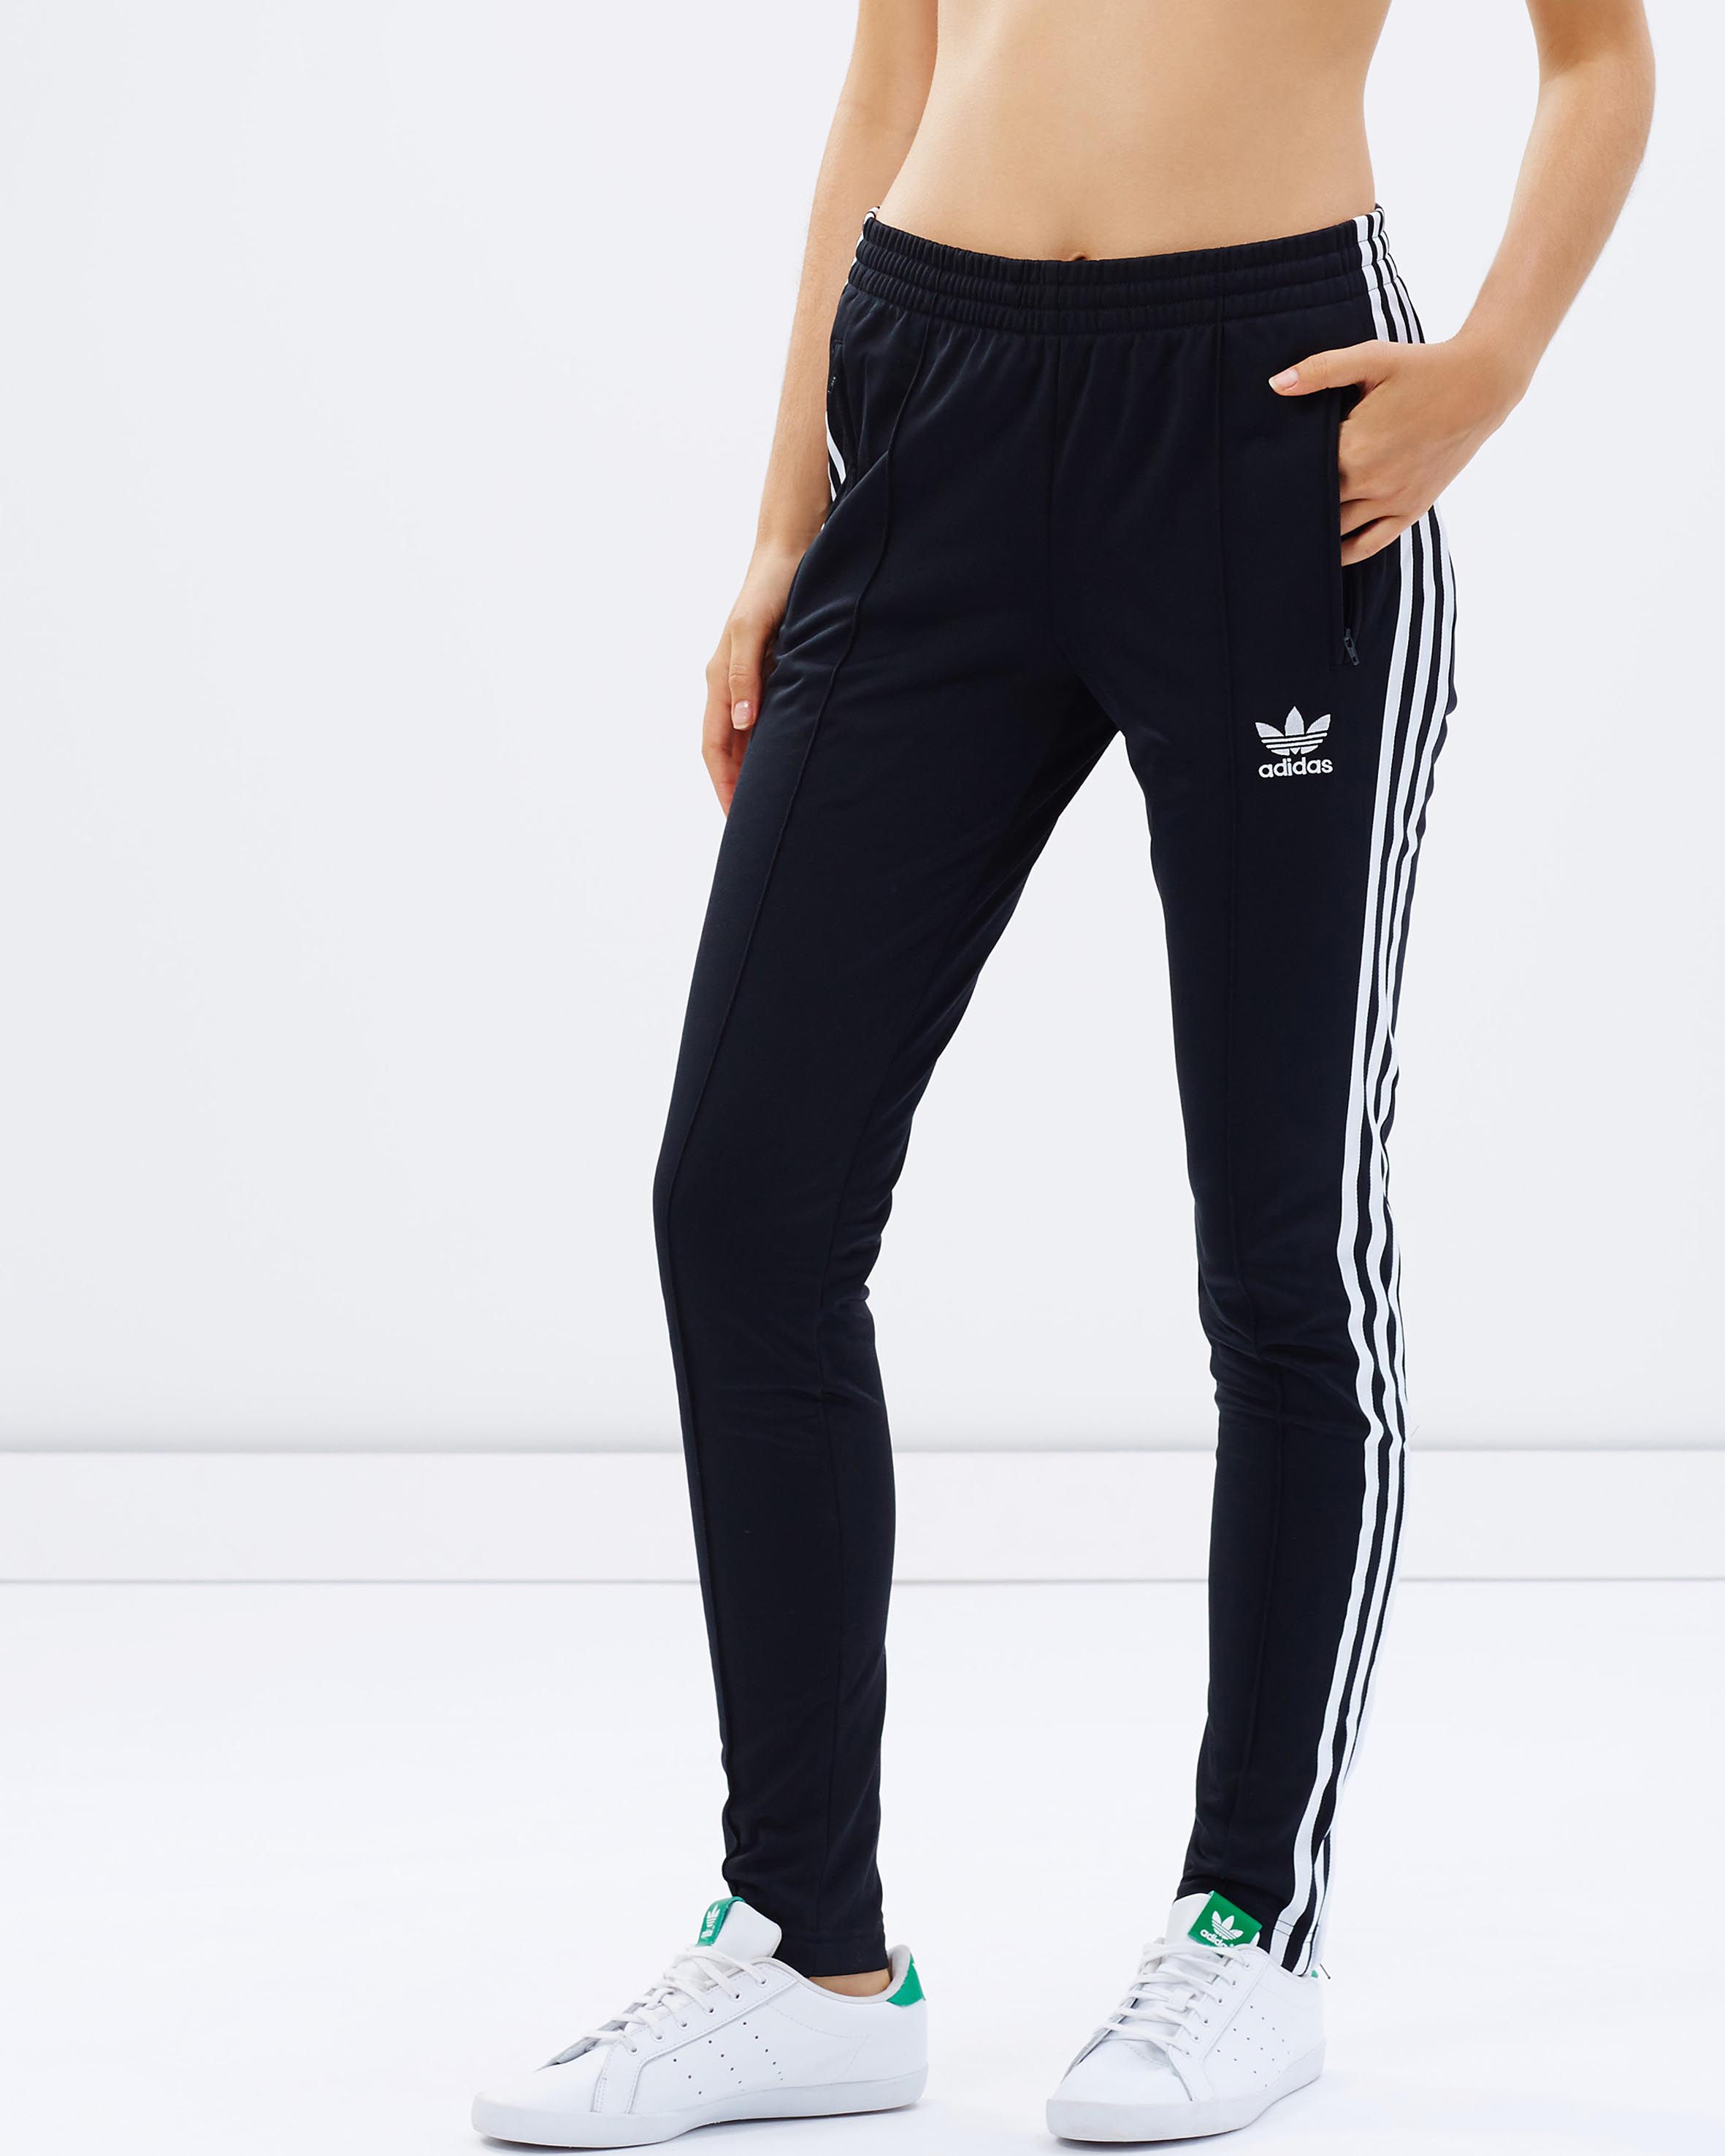 Unique Adidas Women CL Knit Track Pants  EBay